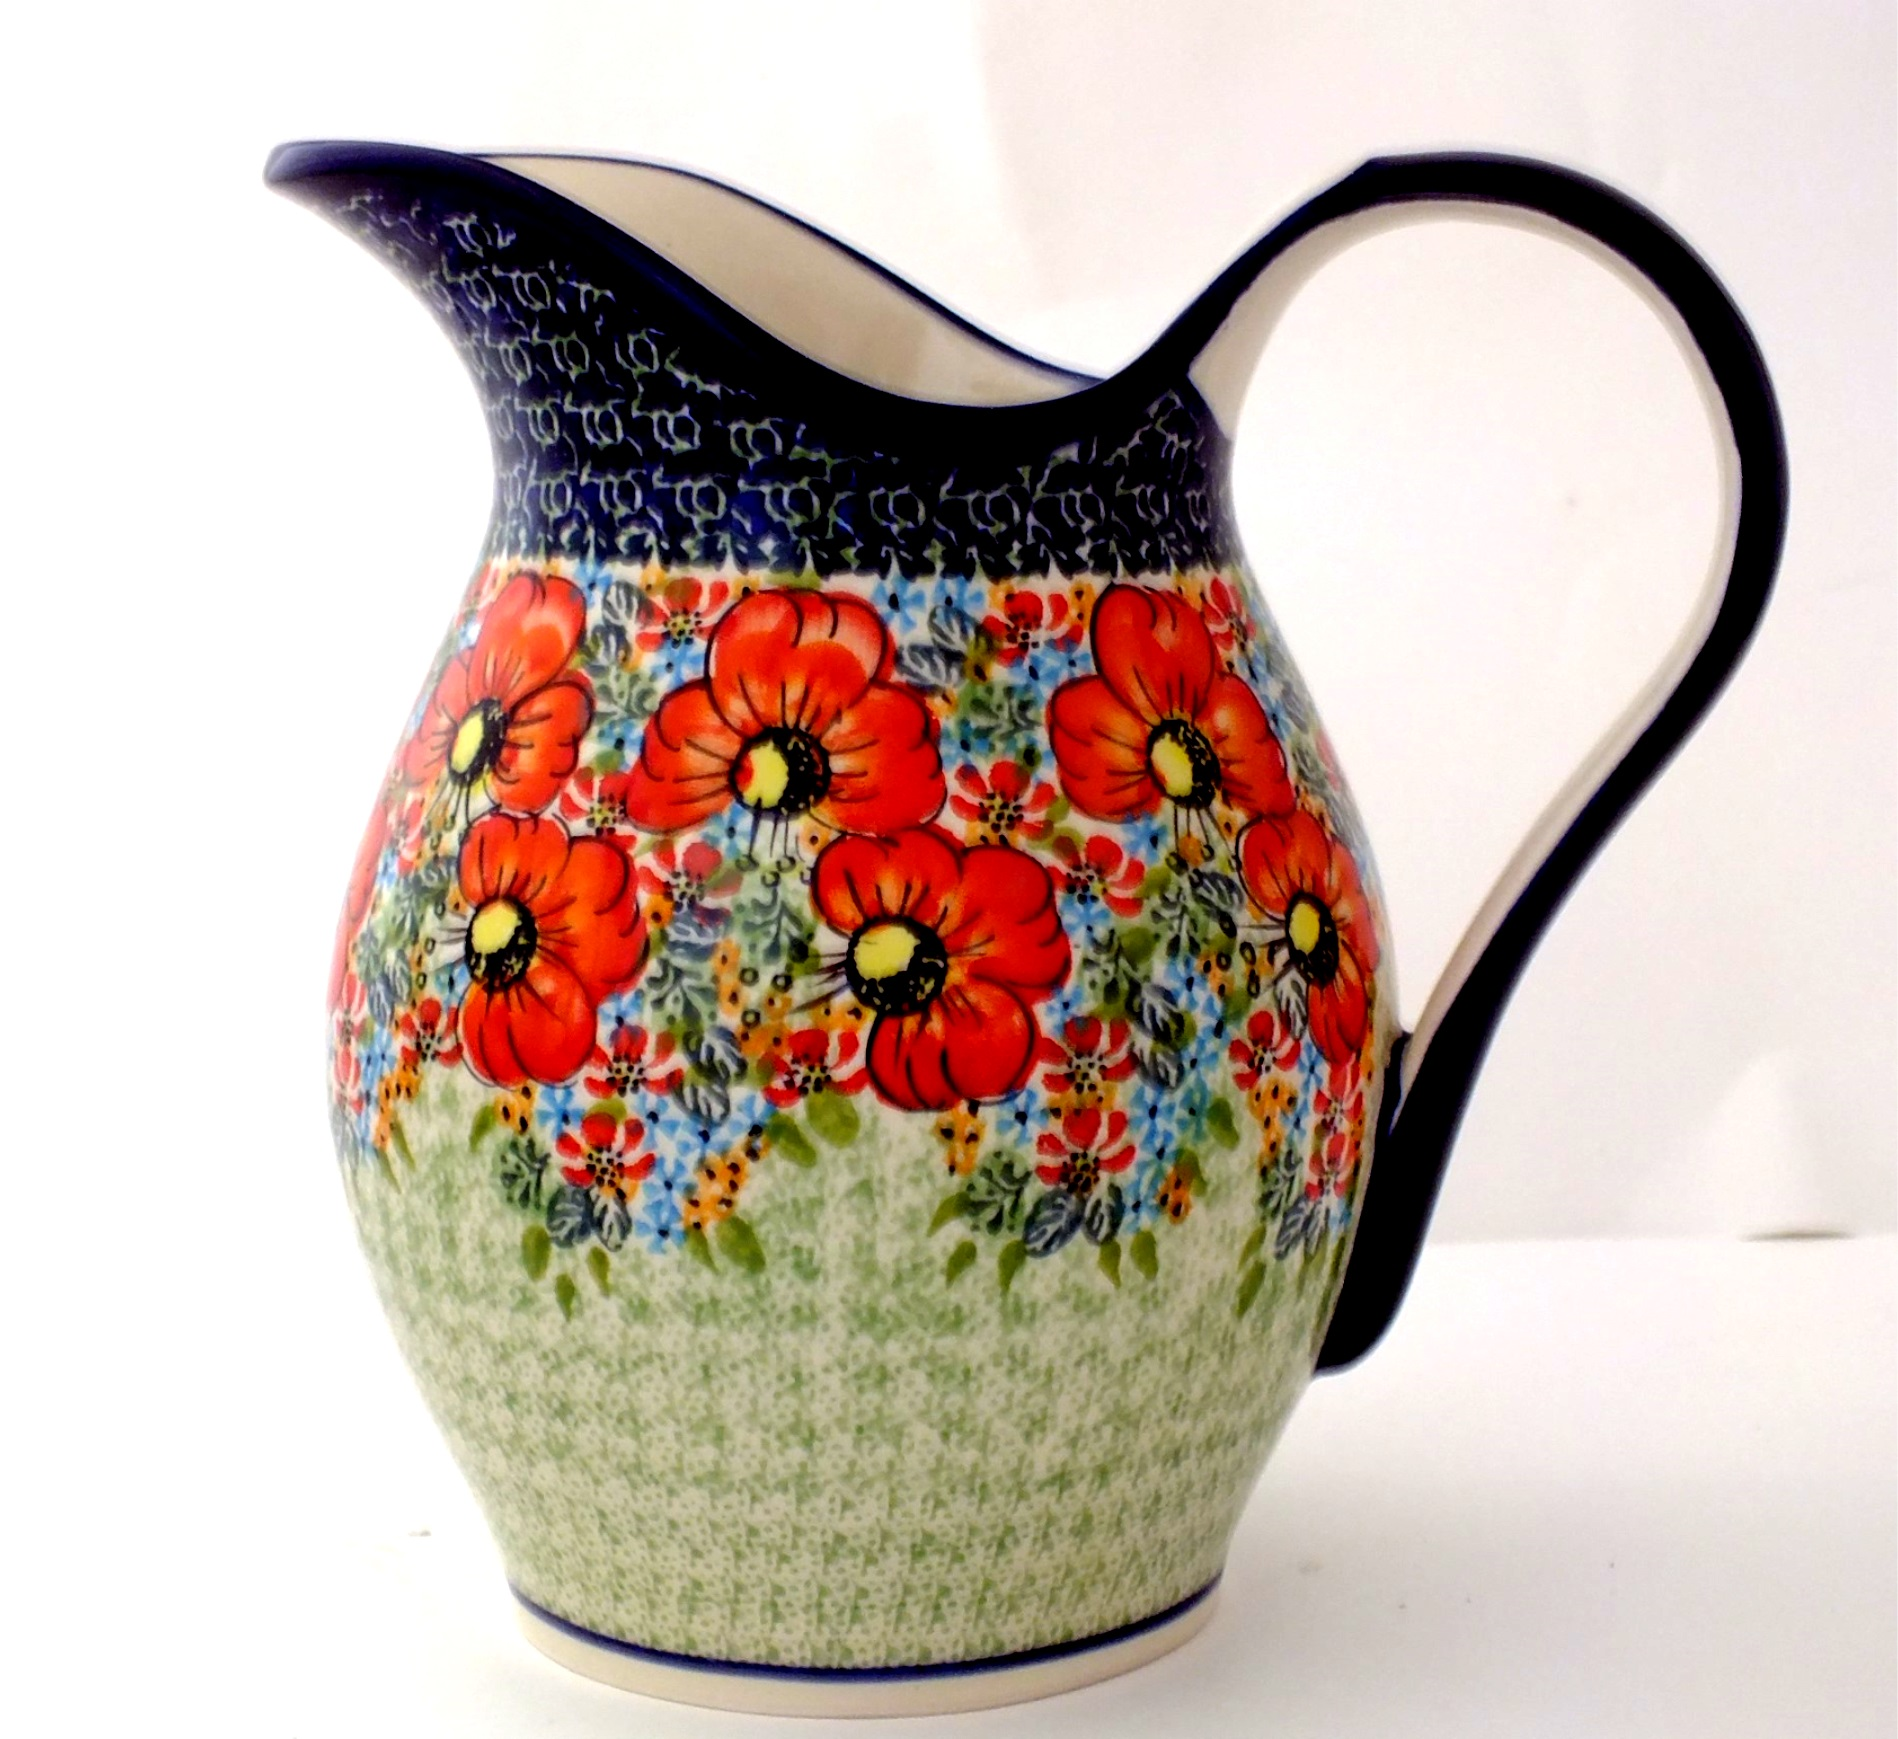 Water Pitcher Ceramic Color Palette Polish Pottery 64 Oz Water Pitcher Stoneware